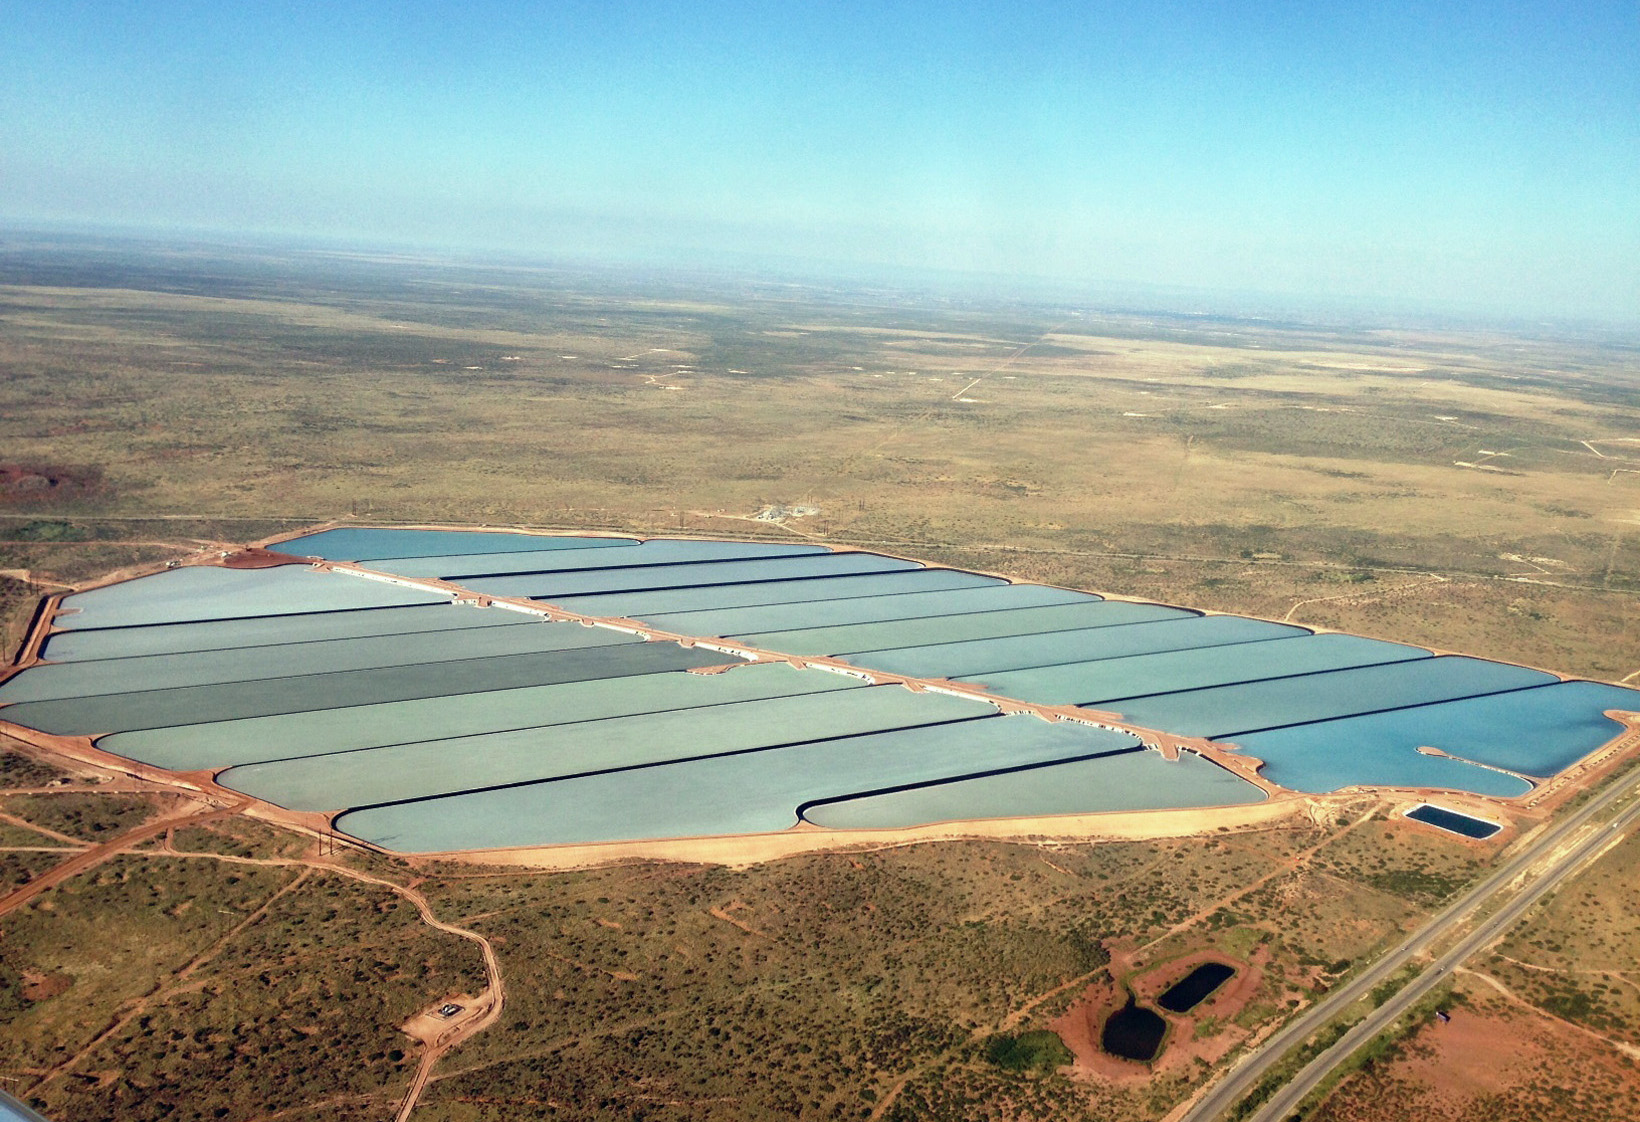 Intrepid Potash Solar